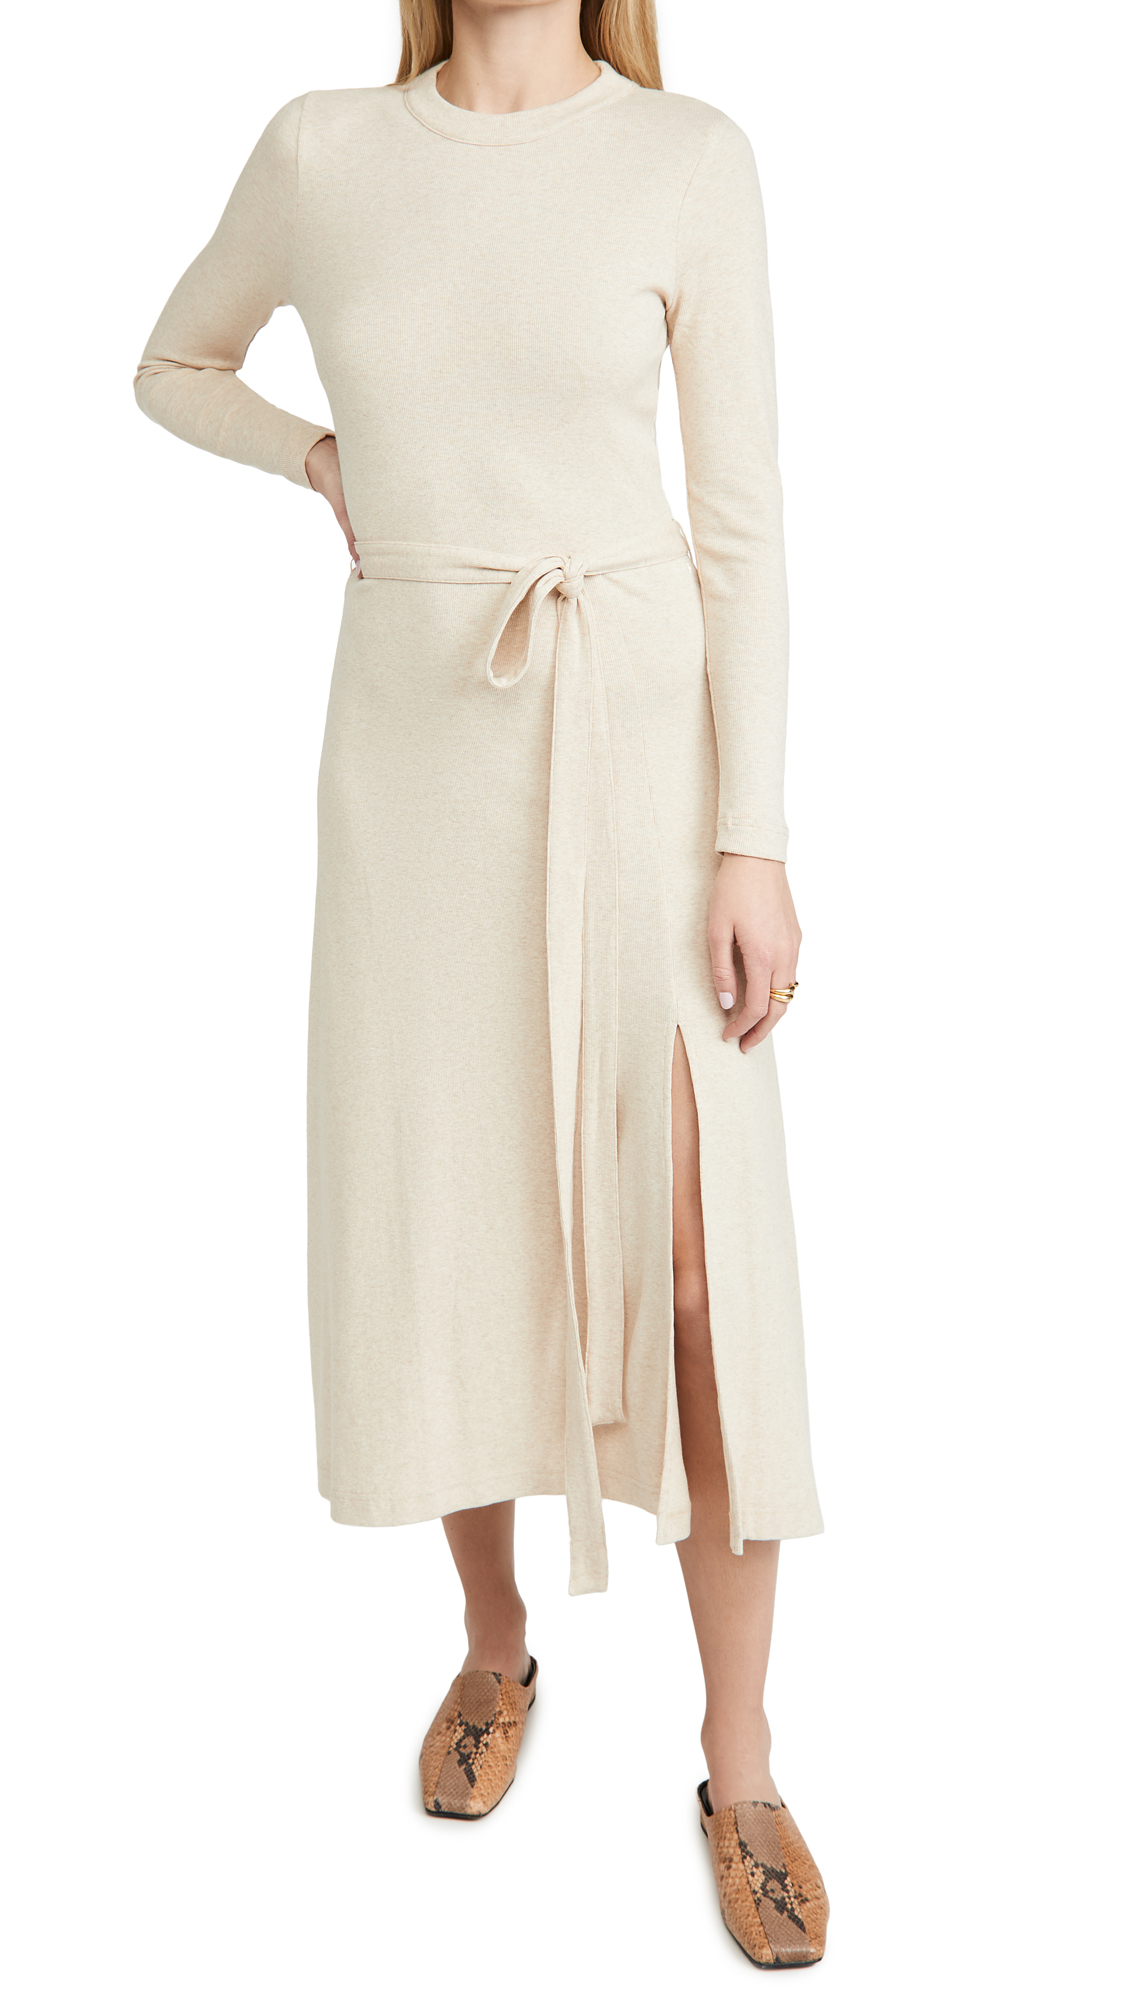 Club Monaco Long Sleeve Rib Dress